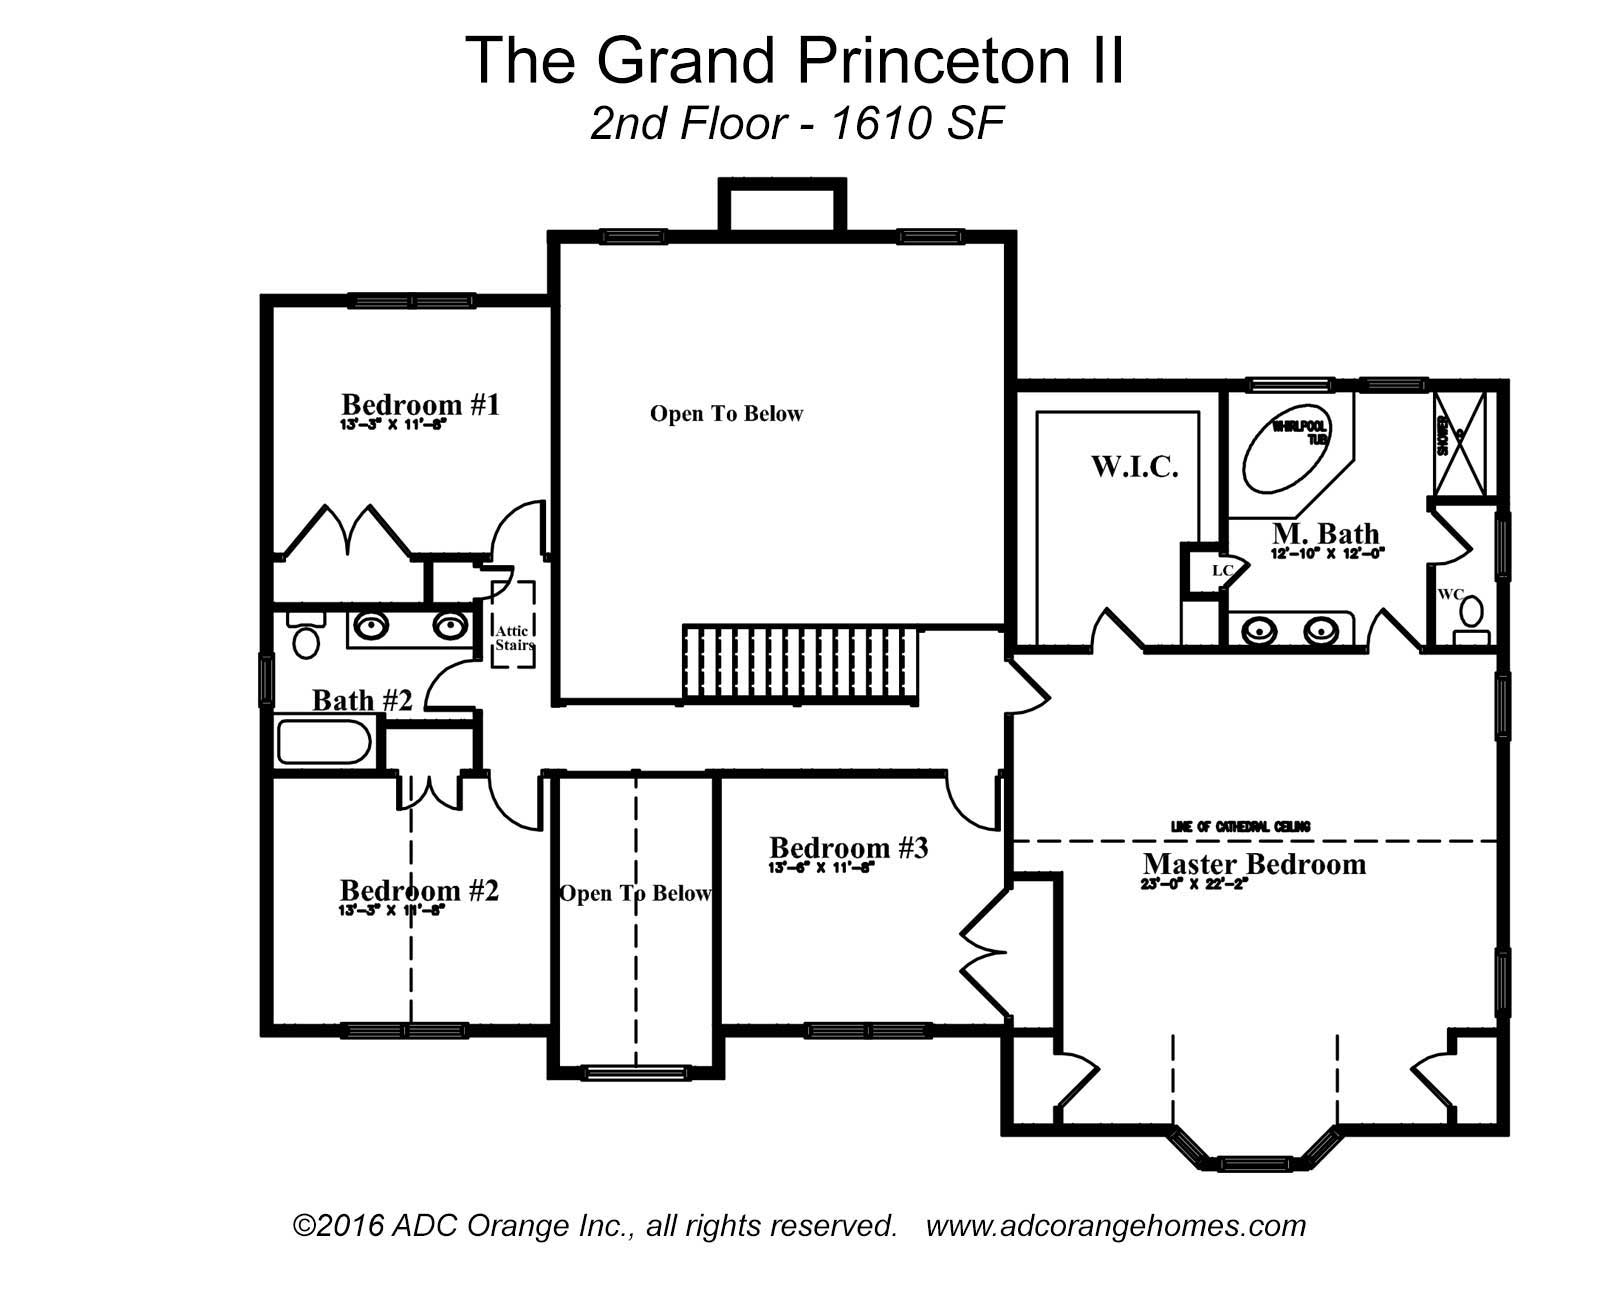 2nd Floor Plan for Grand Princeton II - New Home in Orange County, New York